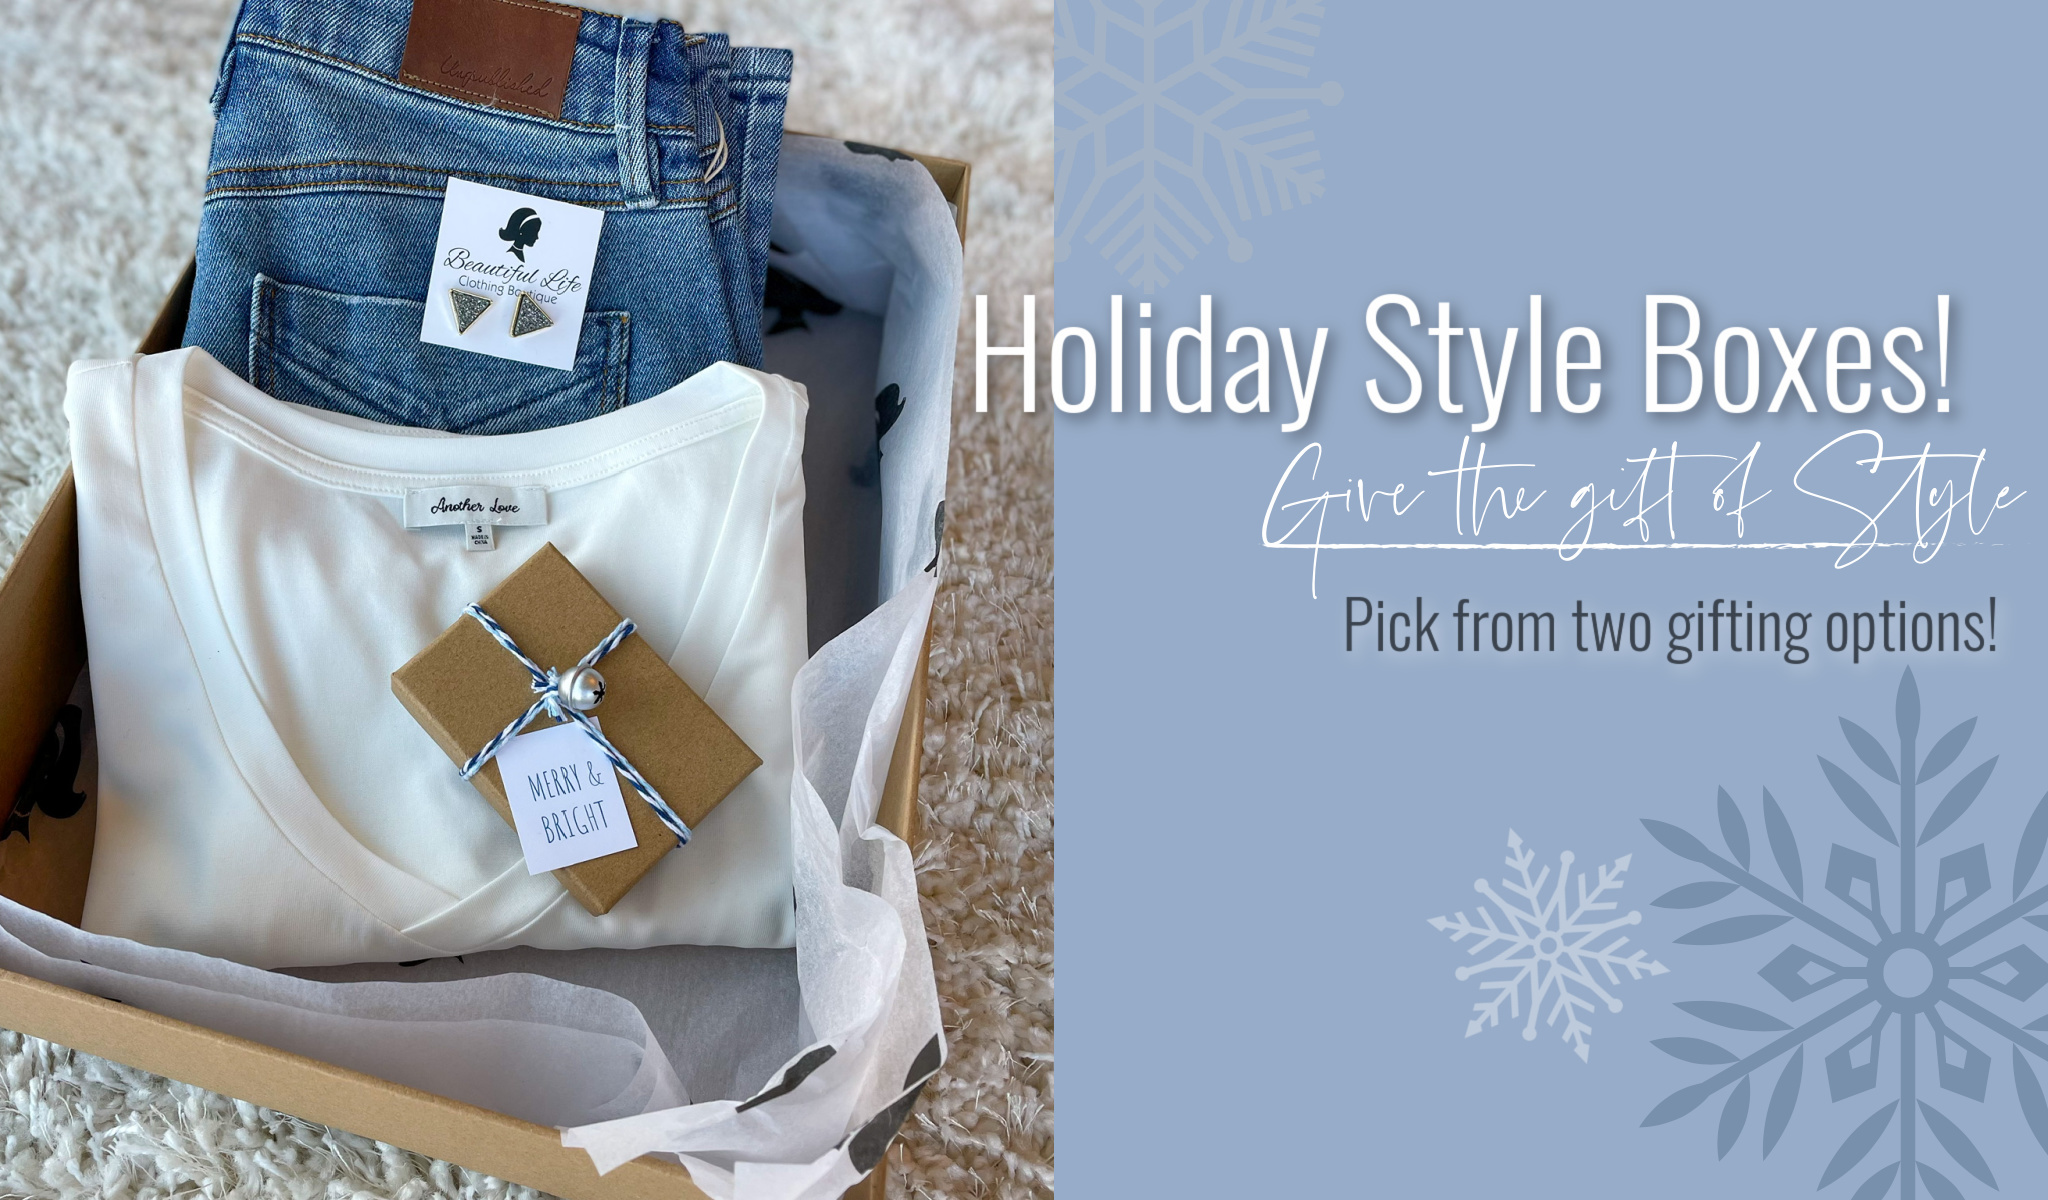 Holiday Style Boxes